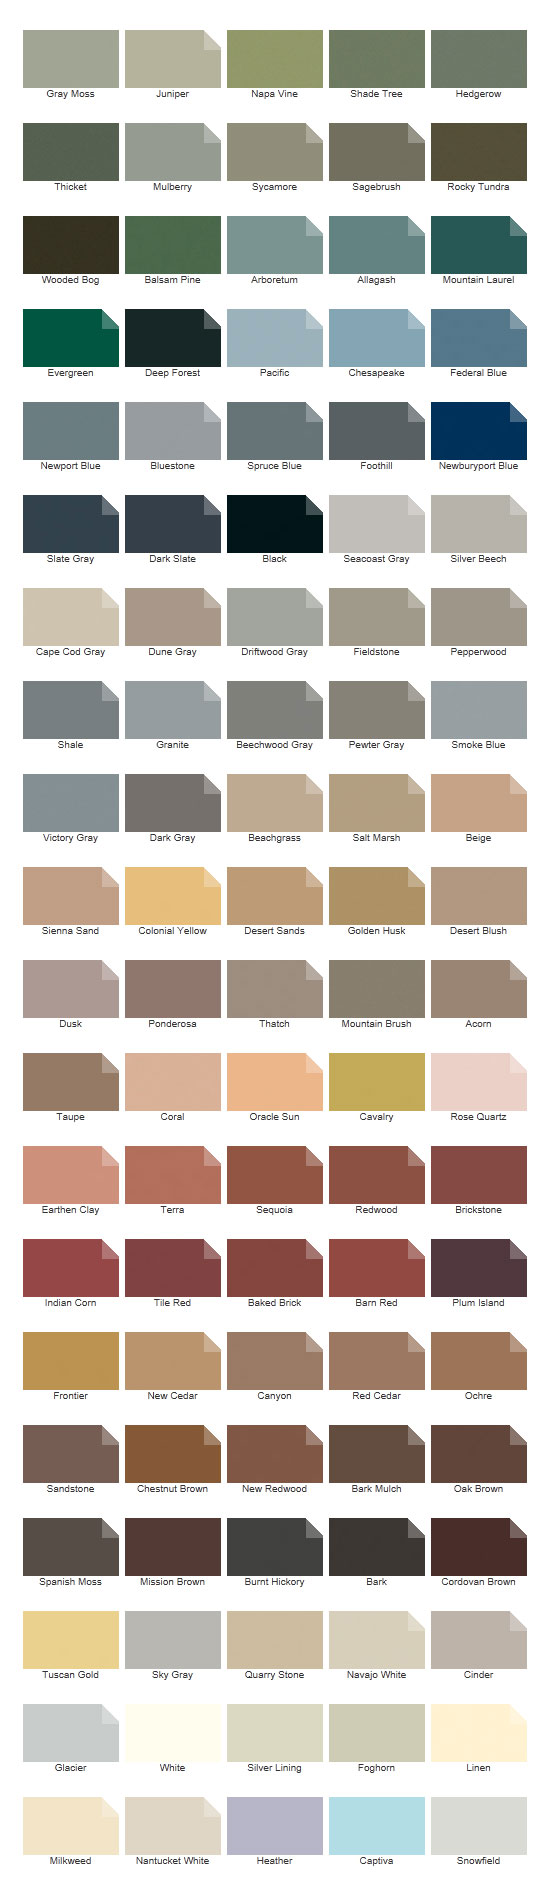 Exterior deck finishes deck stain sikkens cabot olympic - Cabot interior stain color chart ...